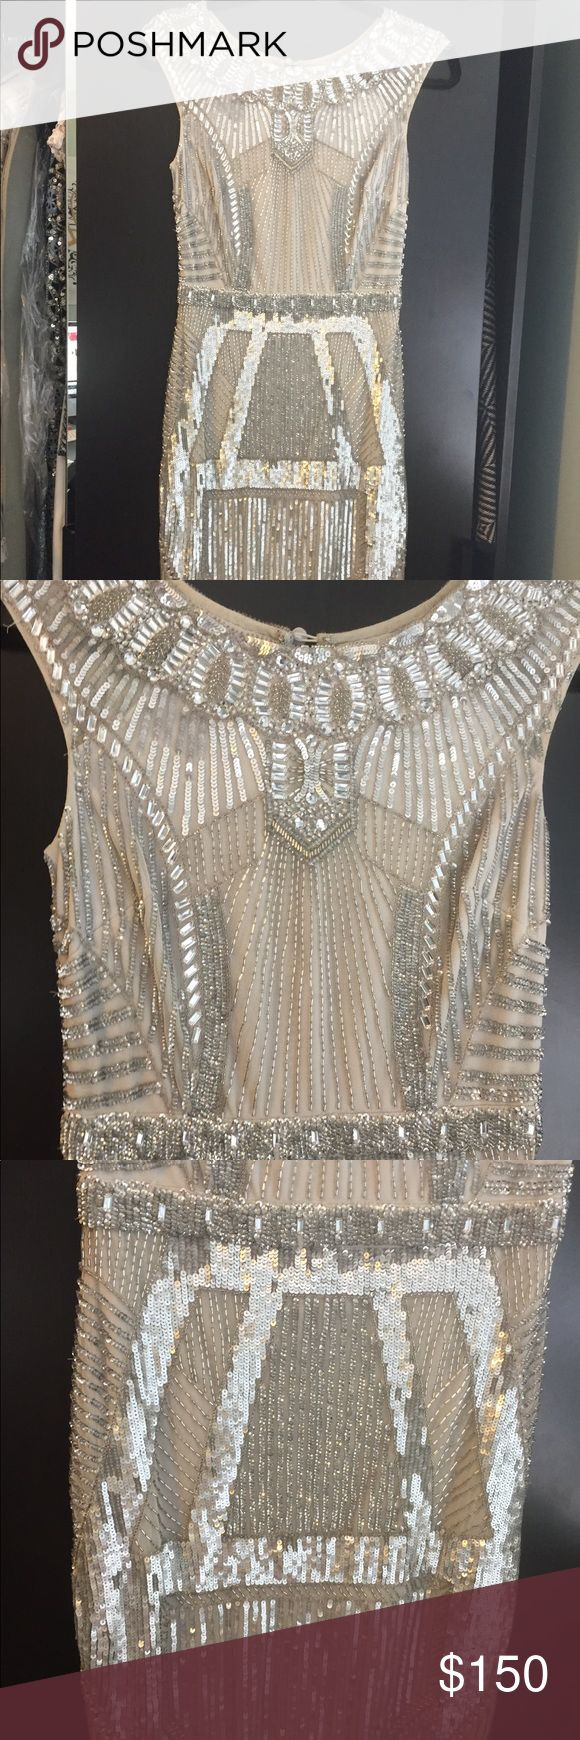 Aidan Mattox gray sequin dress Sequin dress. In great condition. Has one row of sequins missing- see photo. Aidan Mattox Dresses Mini